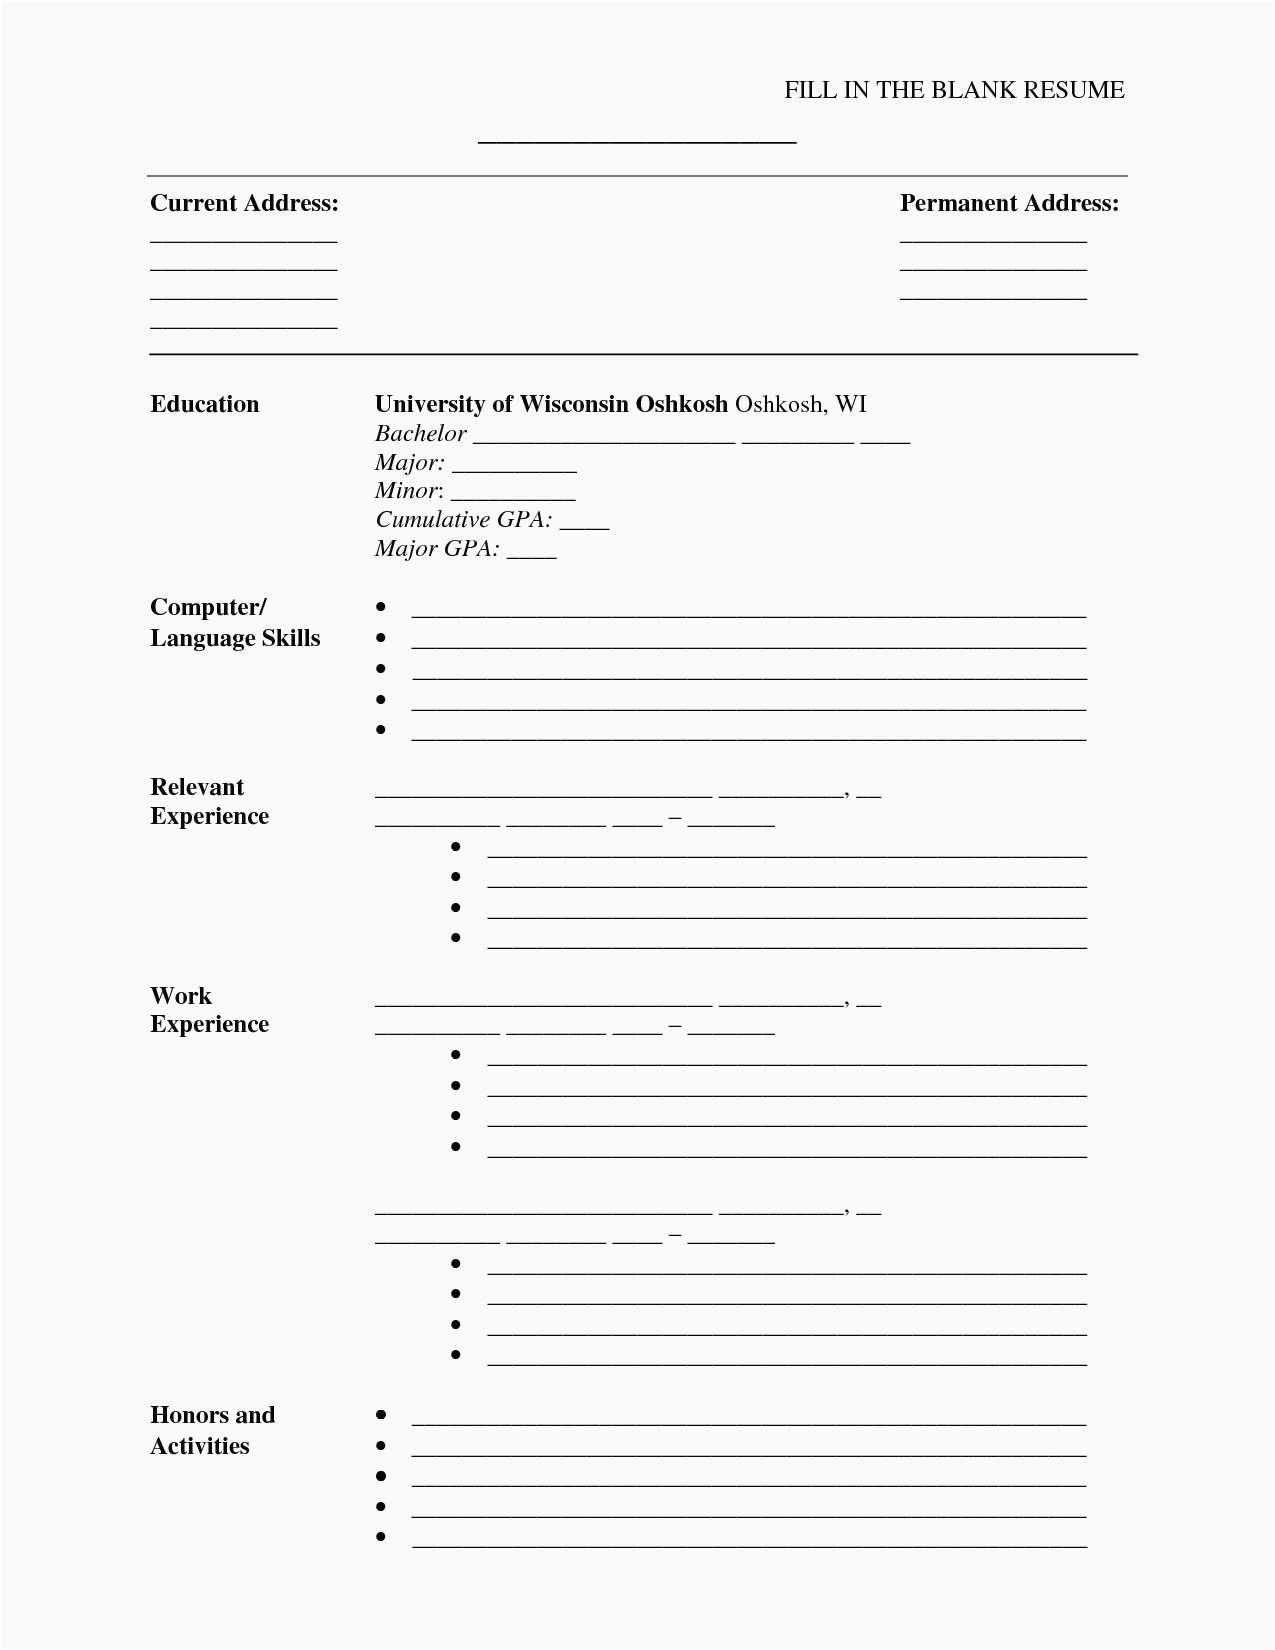 Free Printable Resume Template Inspirational 30 Free Microsoft Word - Free Printable Professional Resume Templates